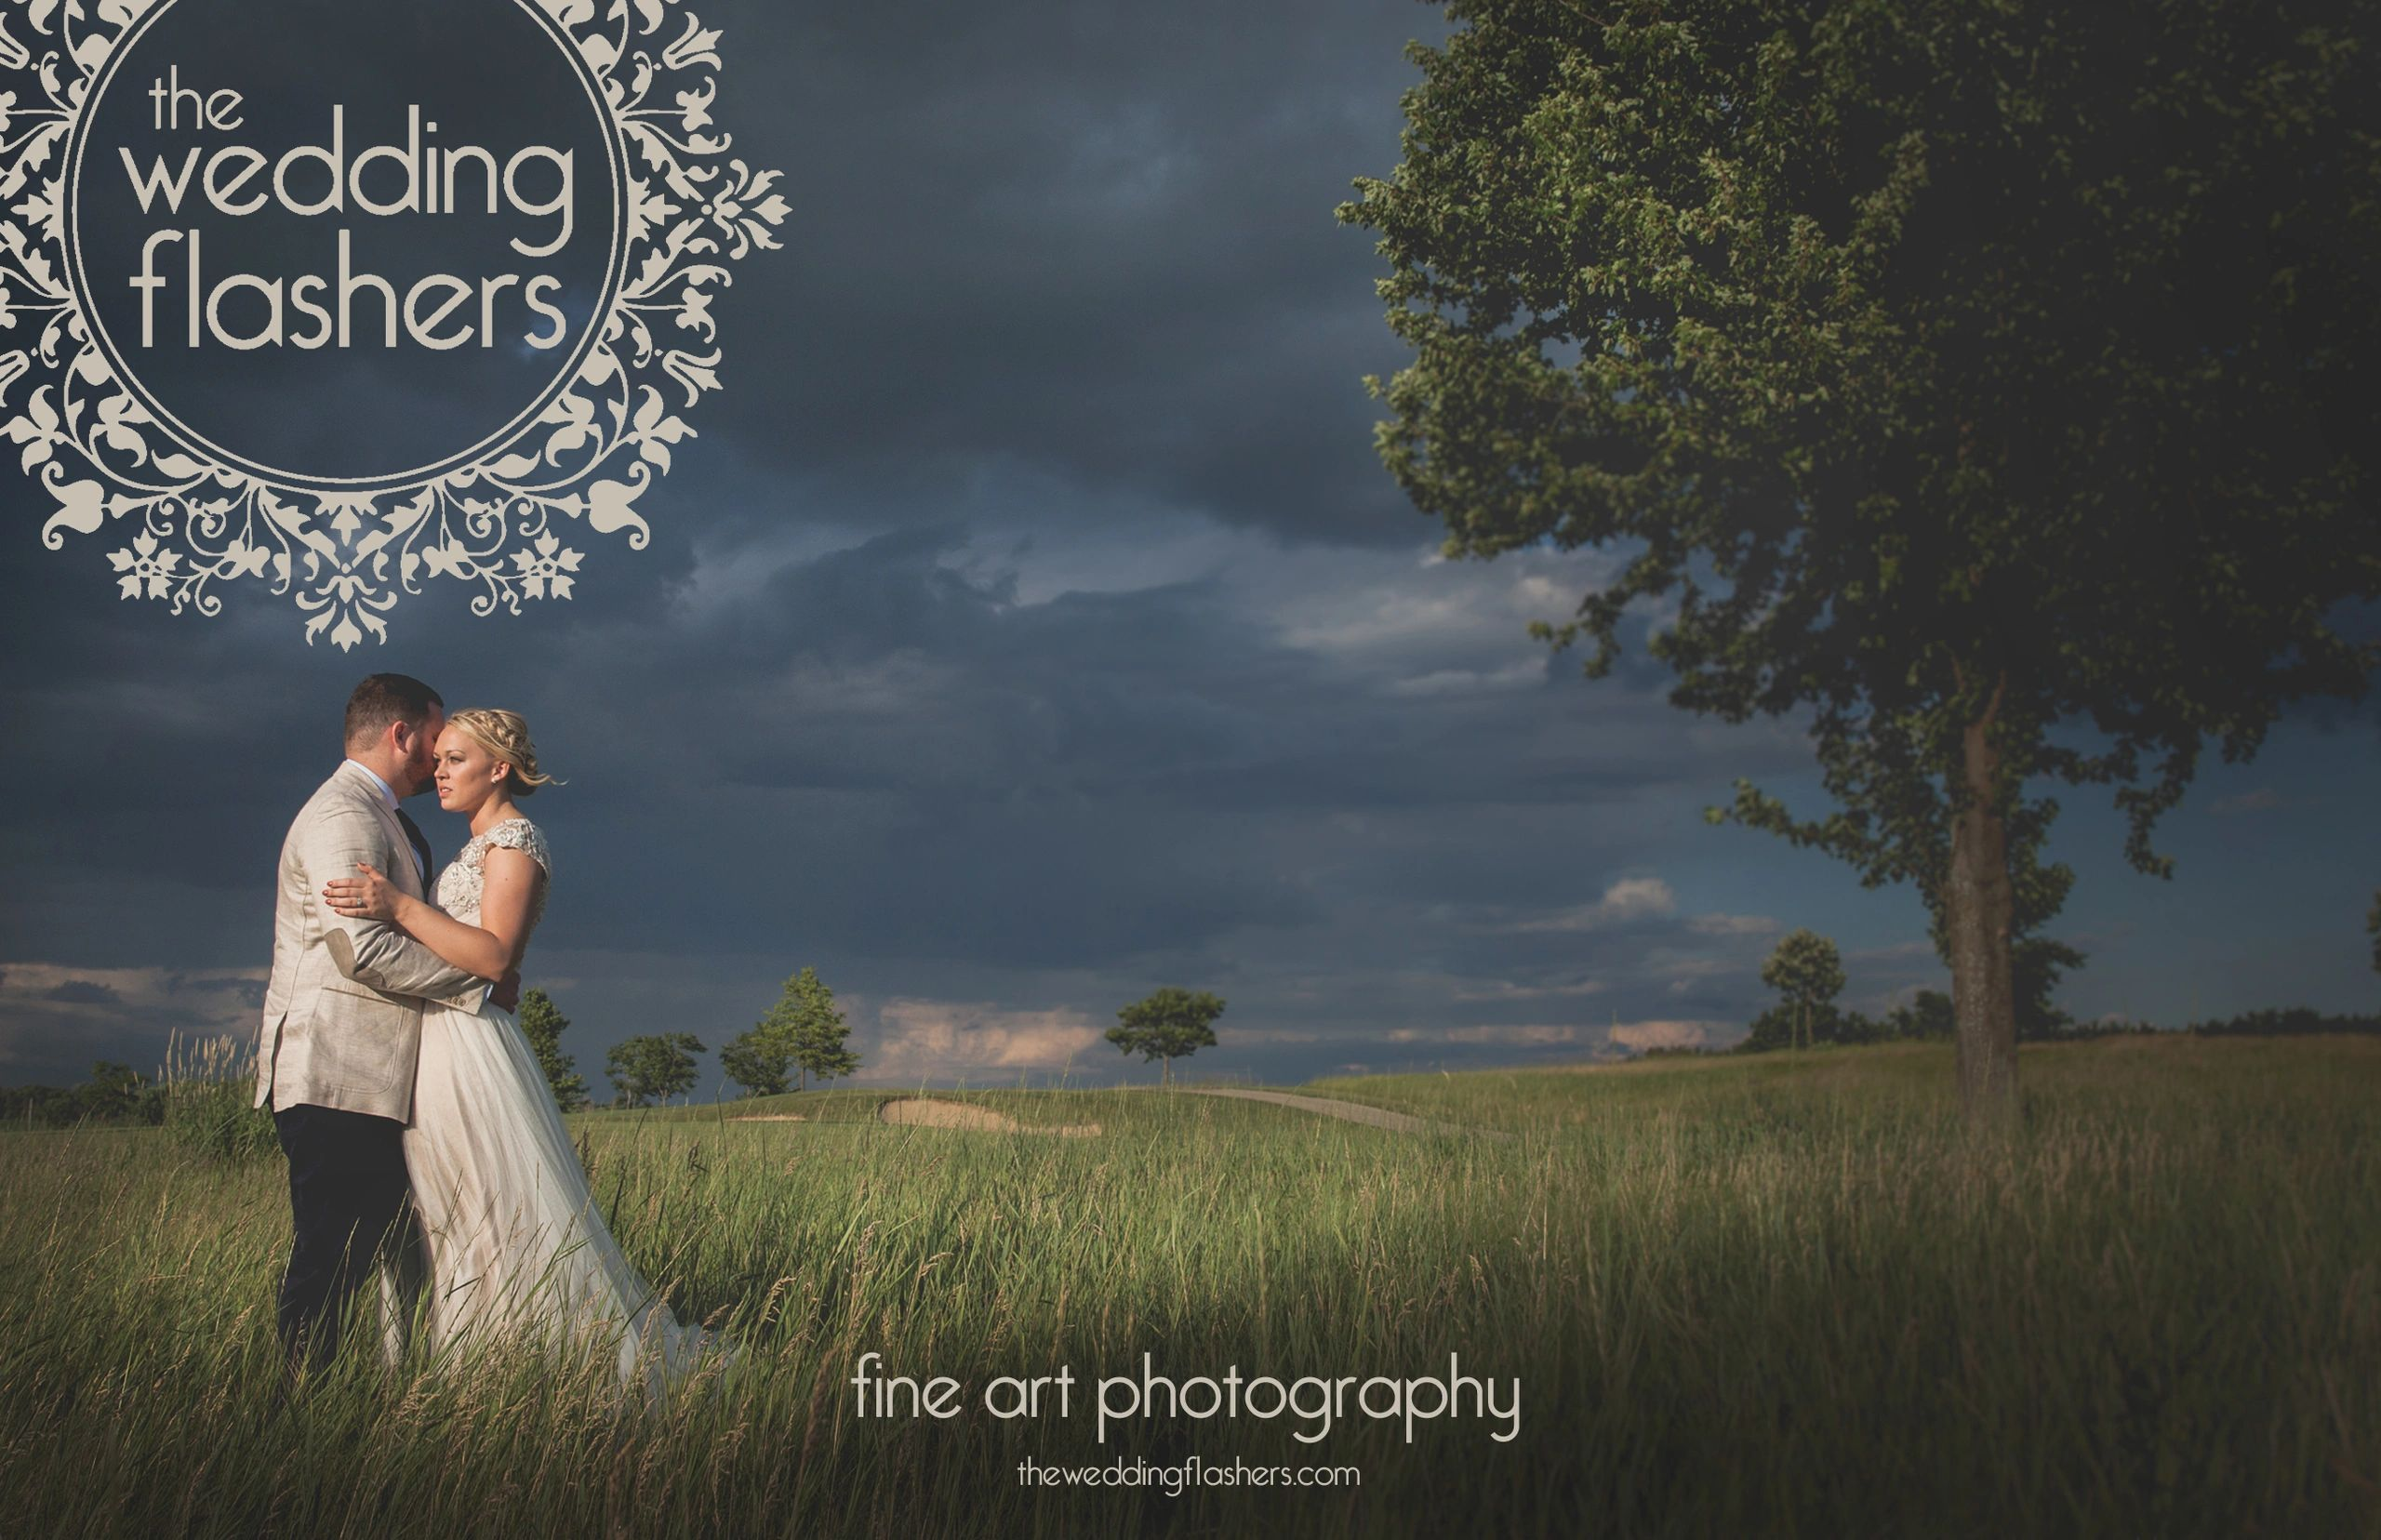 We are Master fine art wedding photographers. Let our TWO PHOTOGRAPHER TEAM tell your LOVE Story!